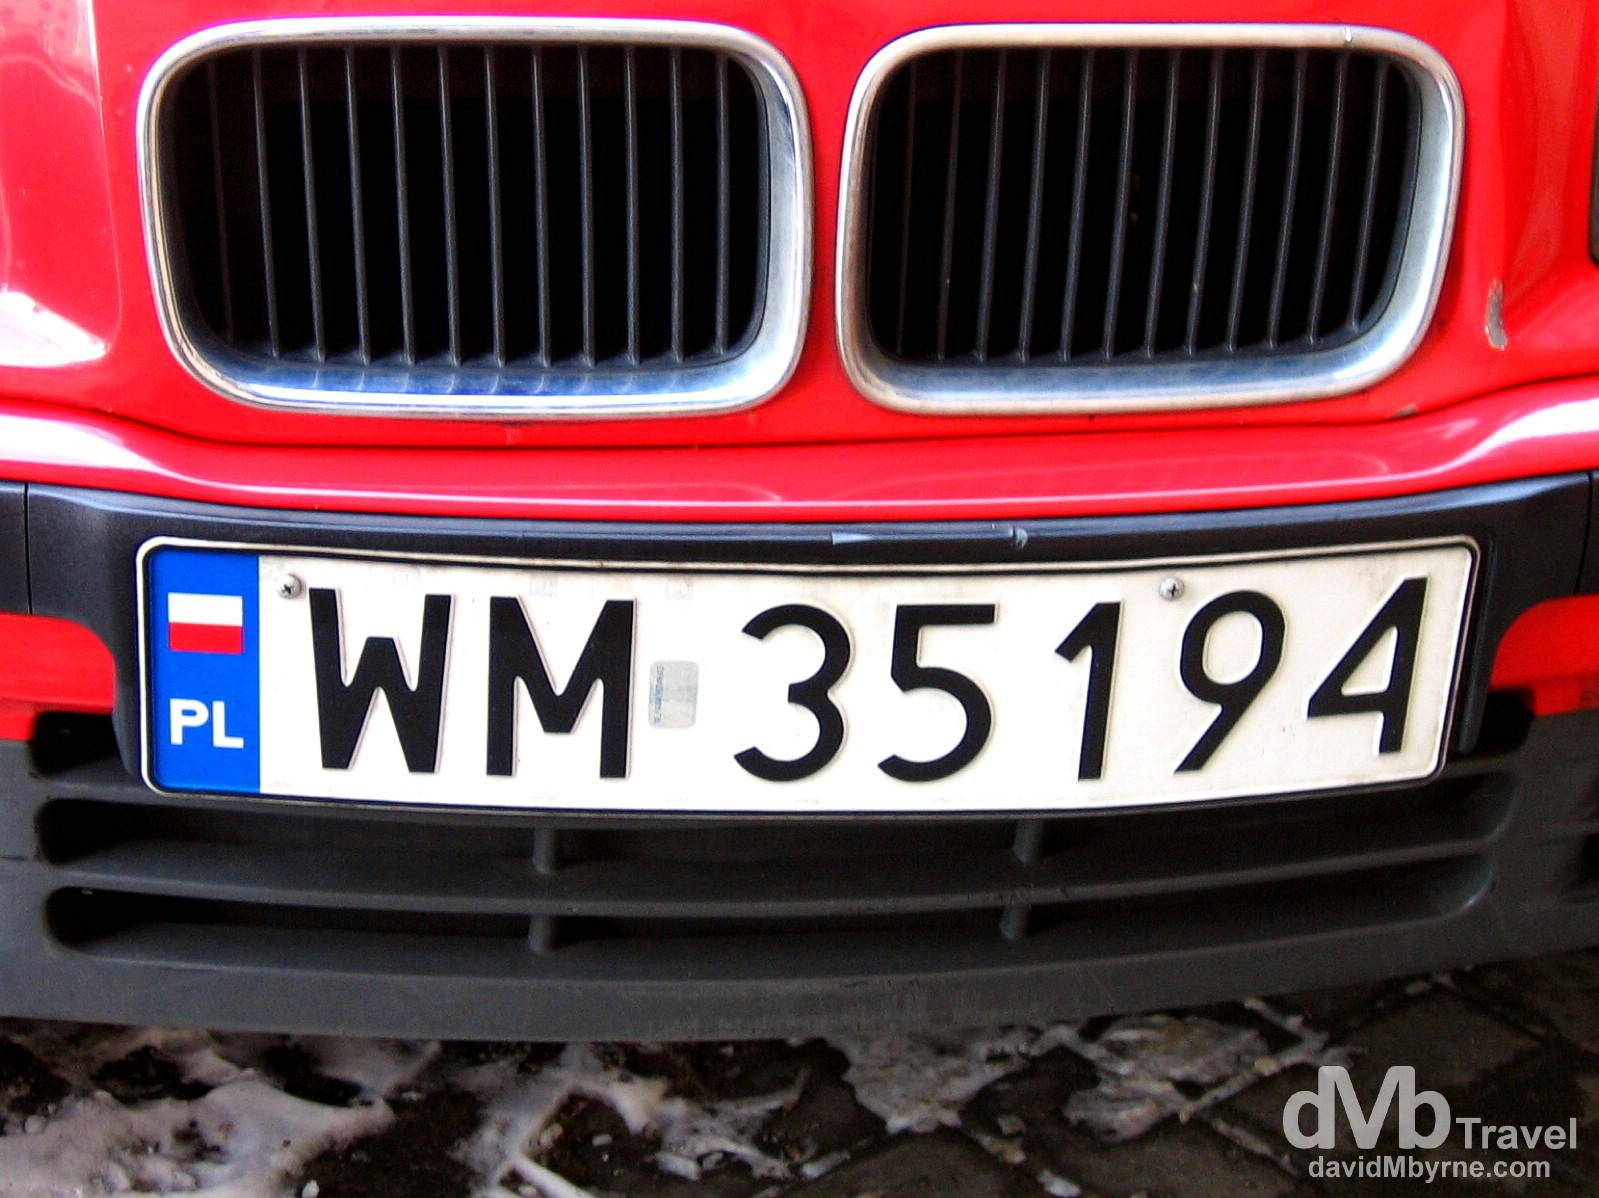 A BMW on the streets of Warsaw, Poland. March 5, 2006.